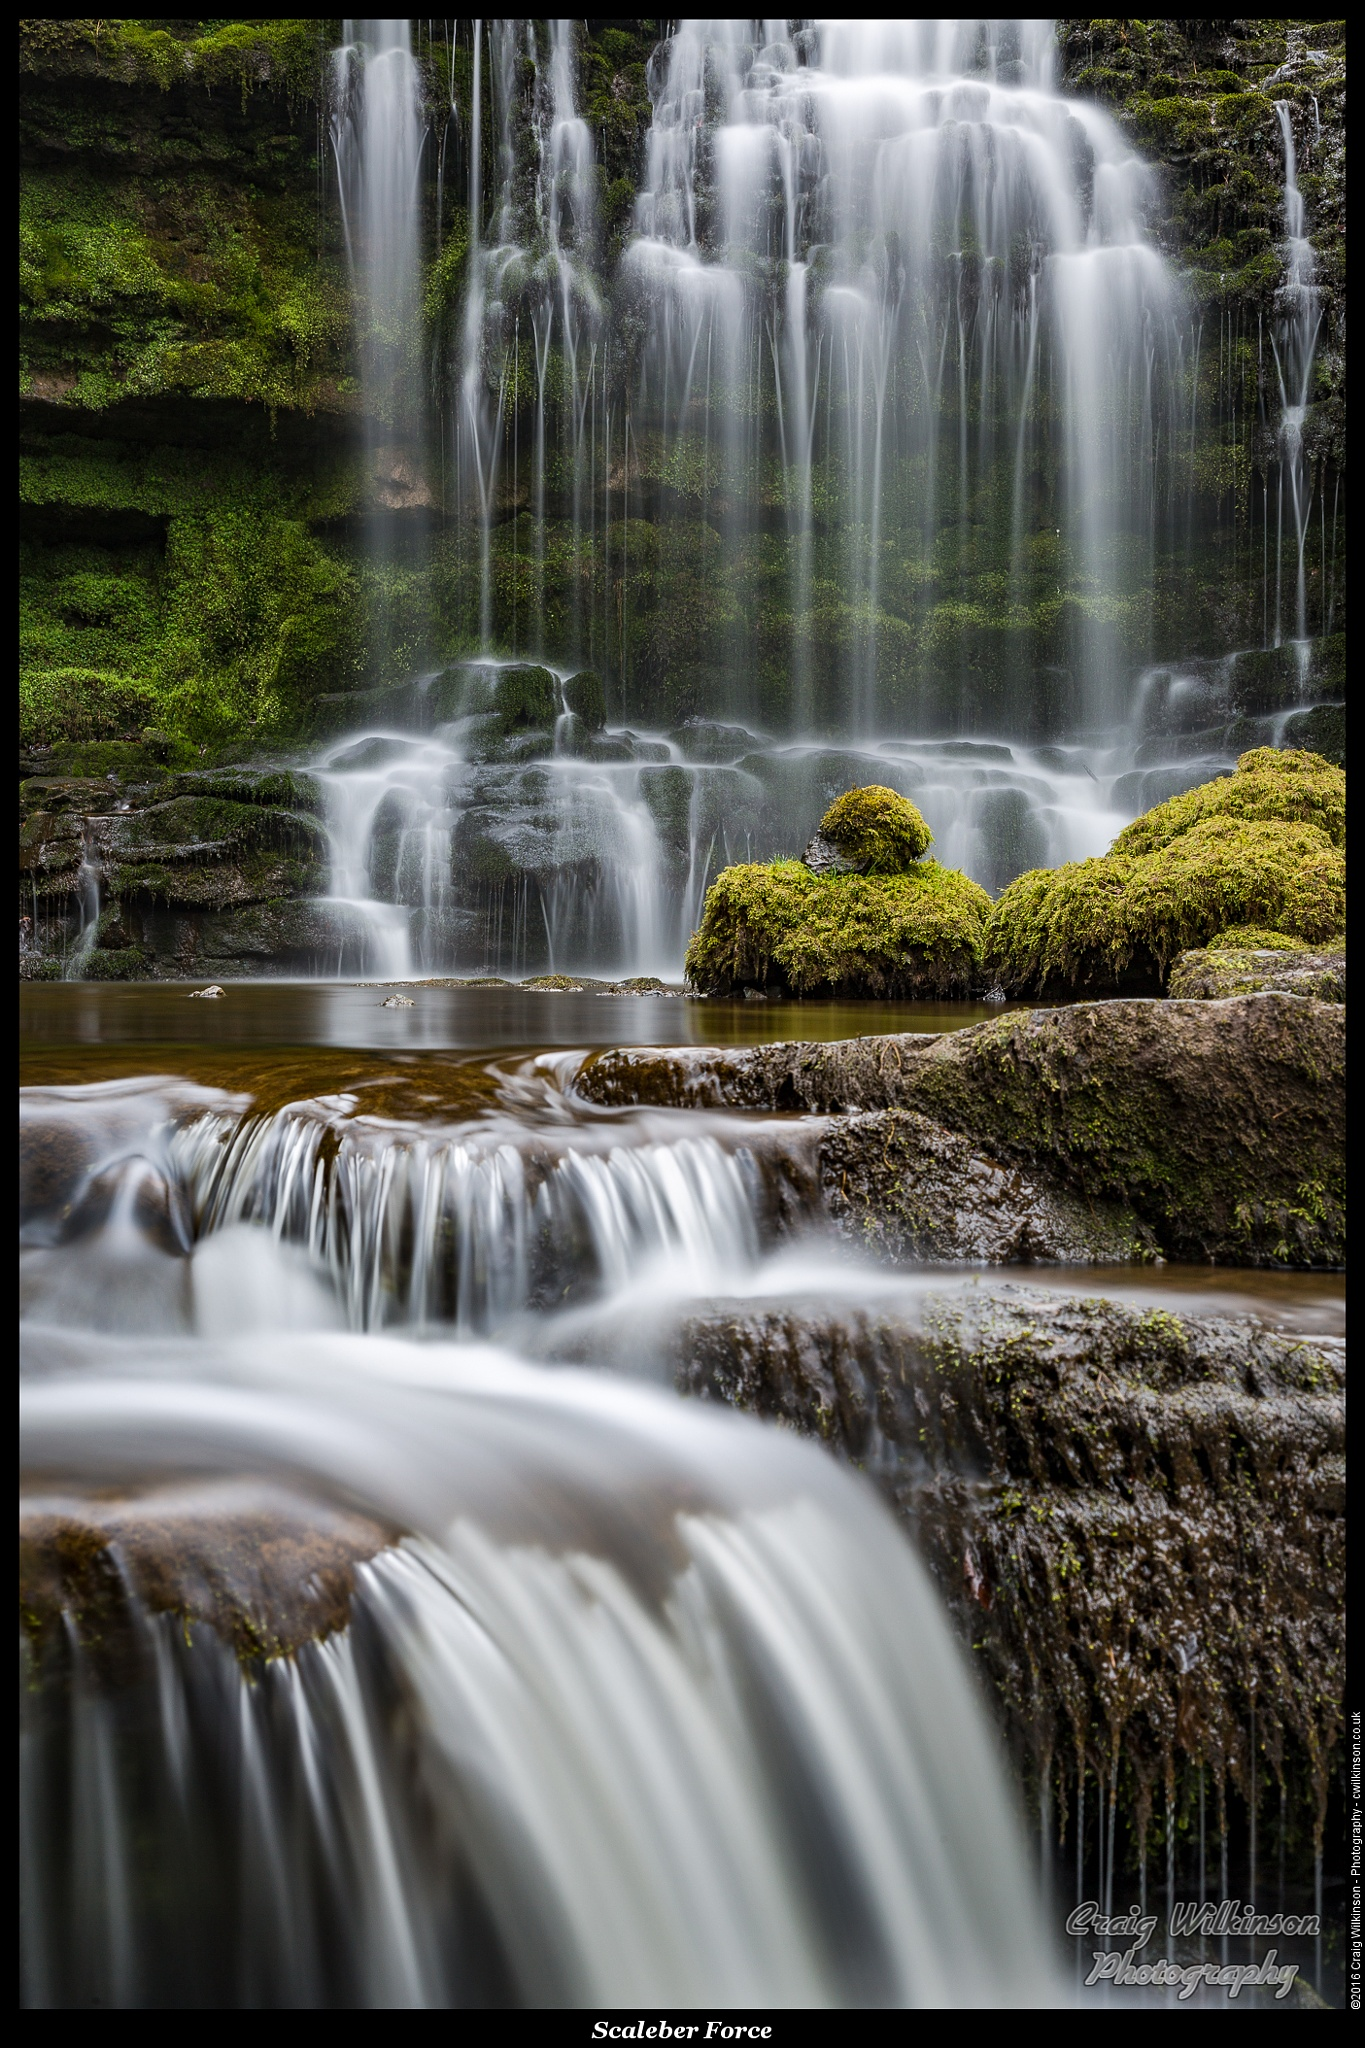 Scaleber Force by Craig Wilkinson